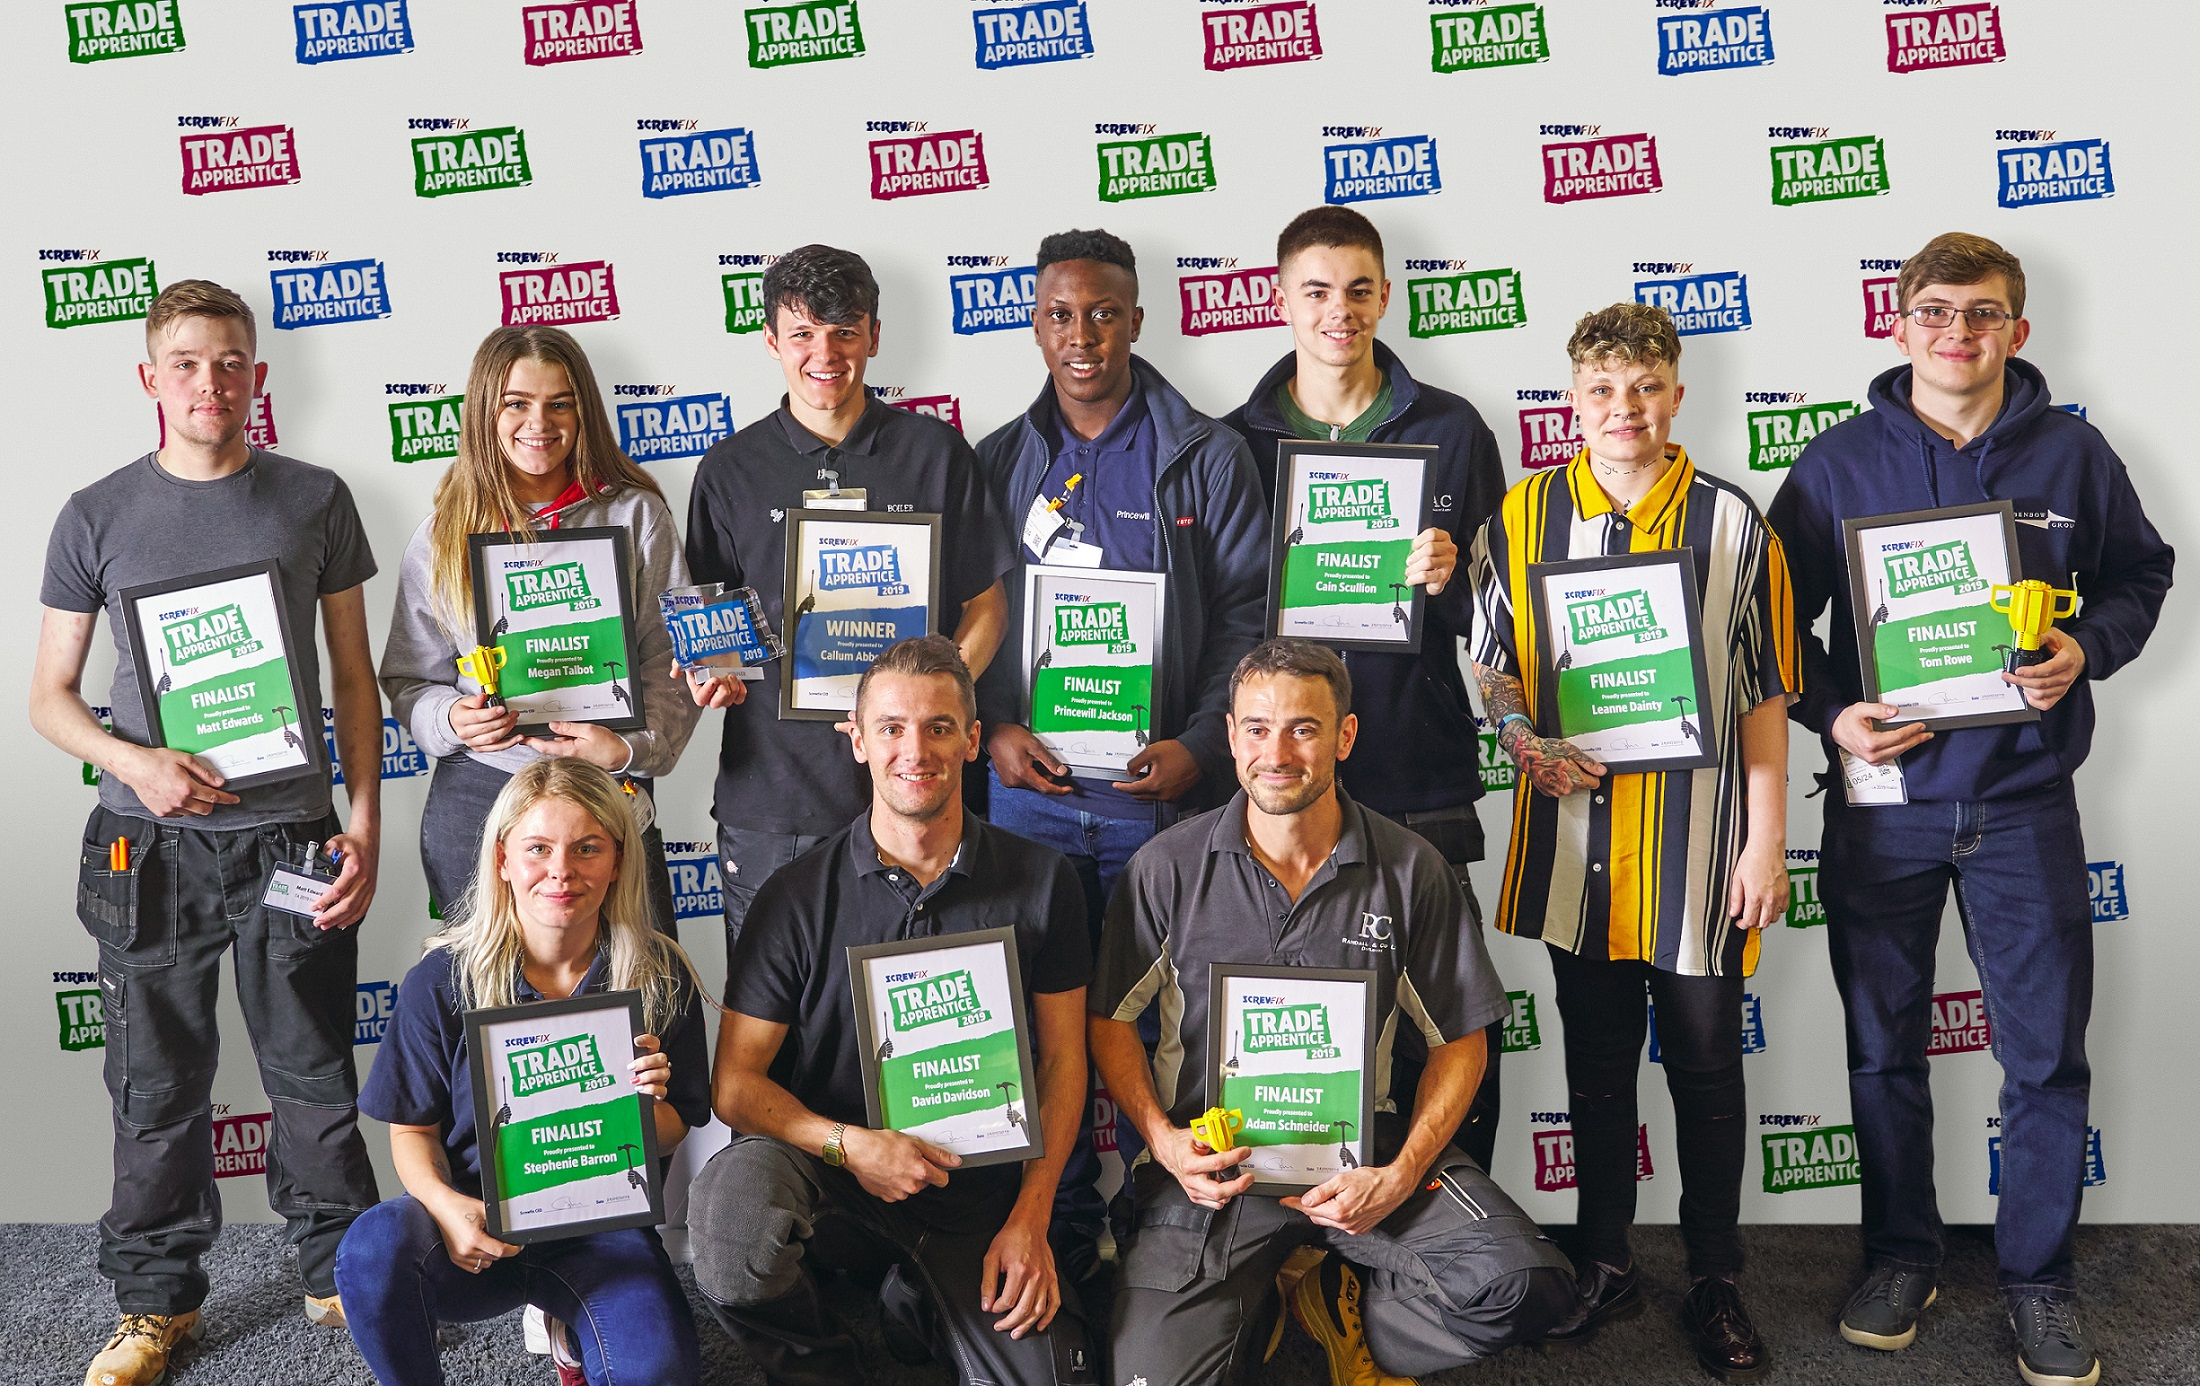 Career -boosting accolade and £10k prize bundle up for grabs as the Screwfix Trade Apprentice competition launches